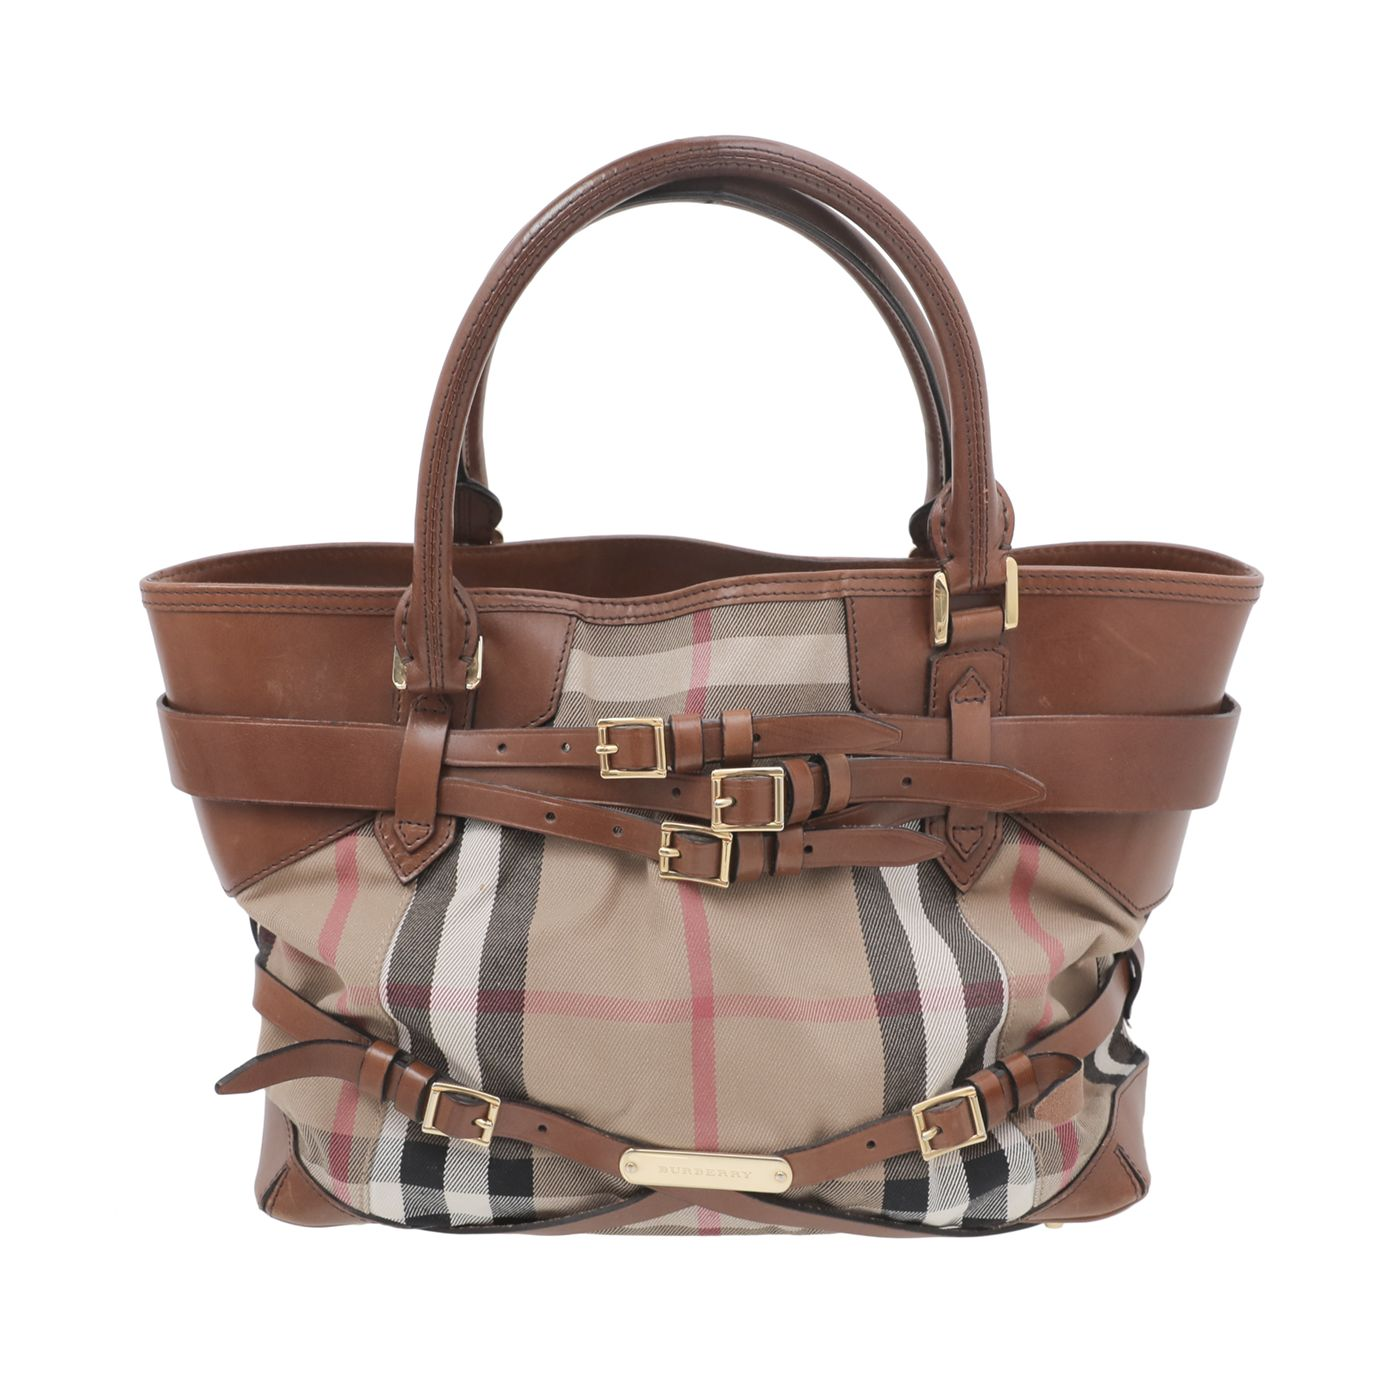 Burberry Brown Bridle Housecheck Tote Bag